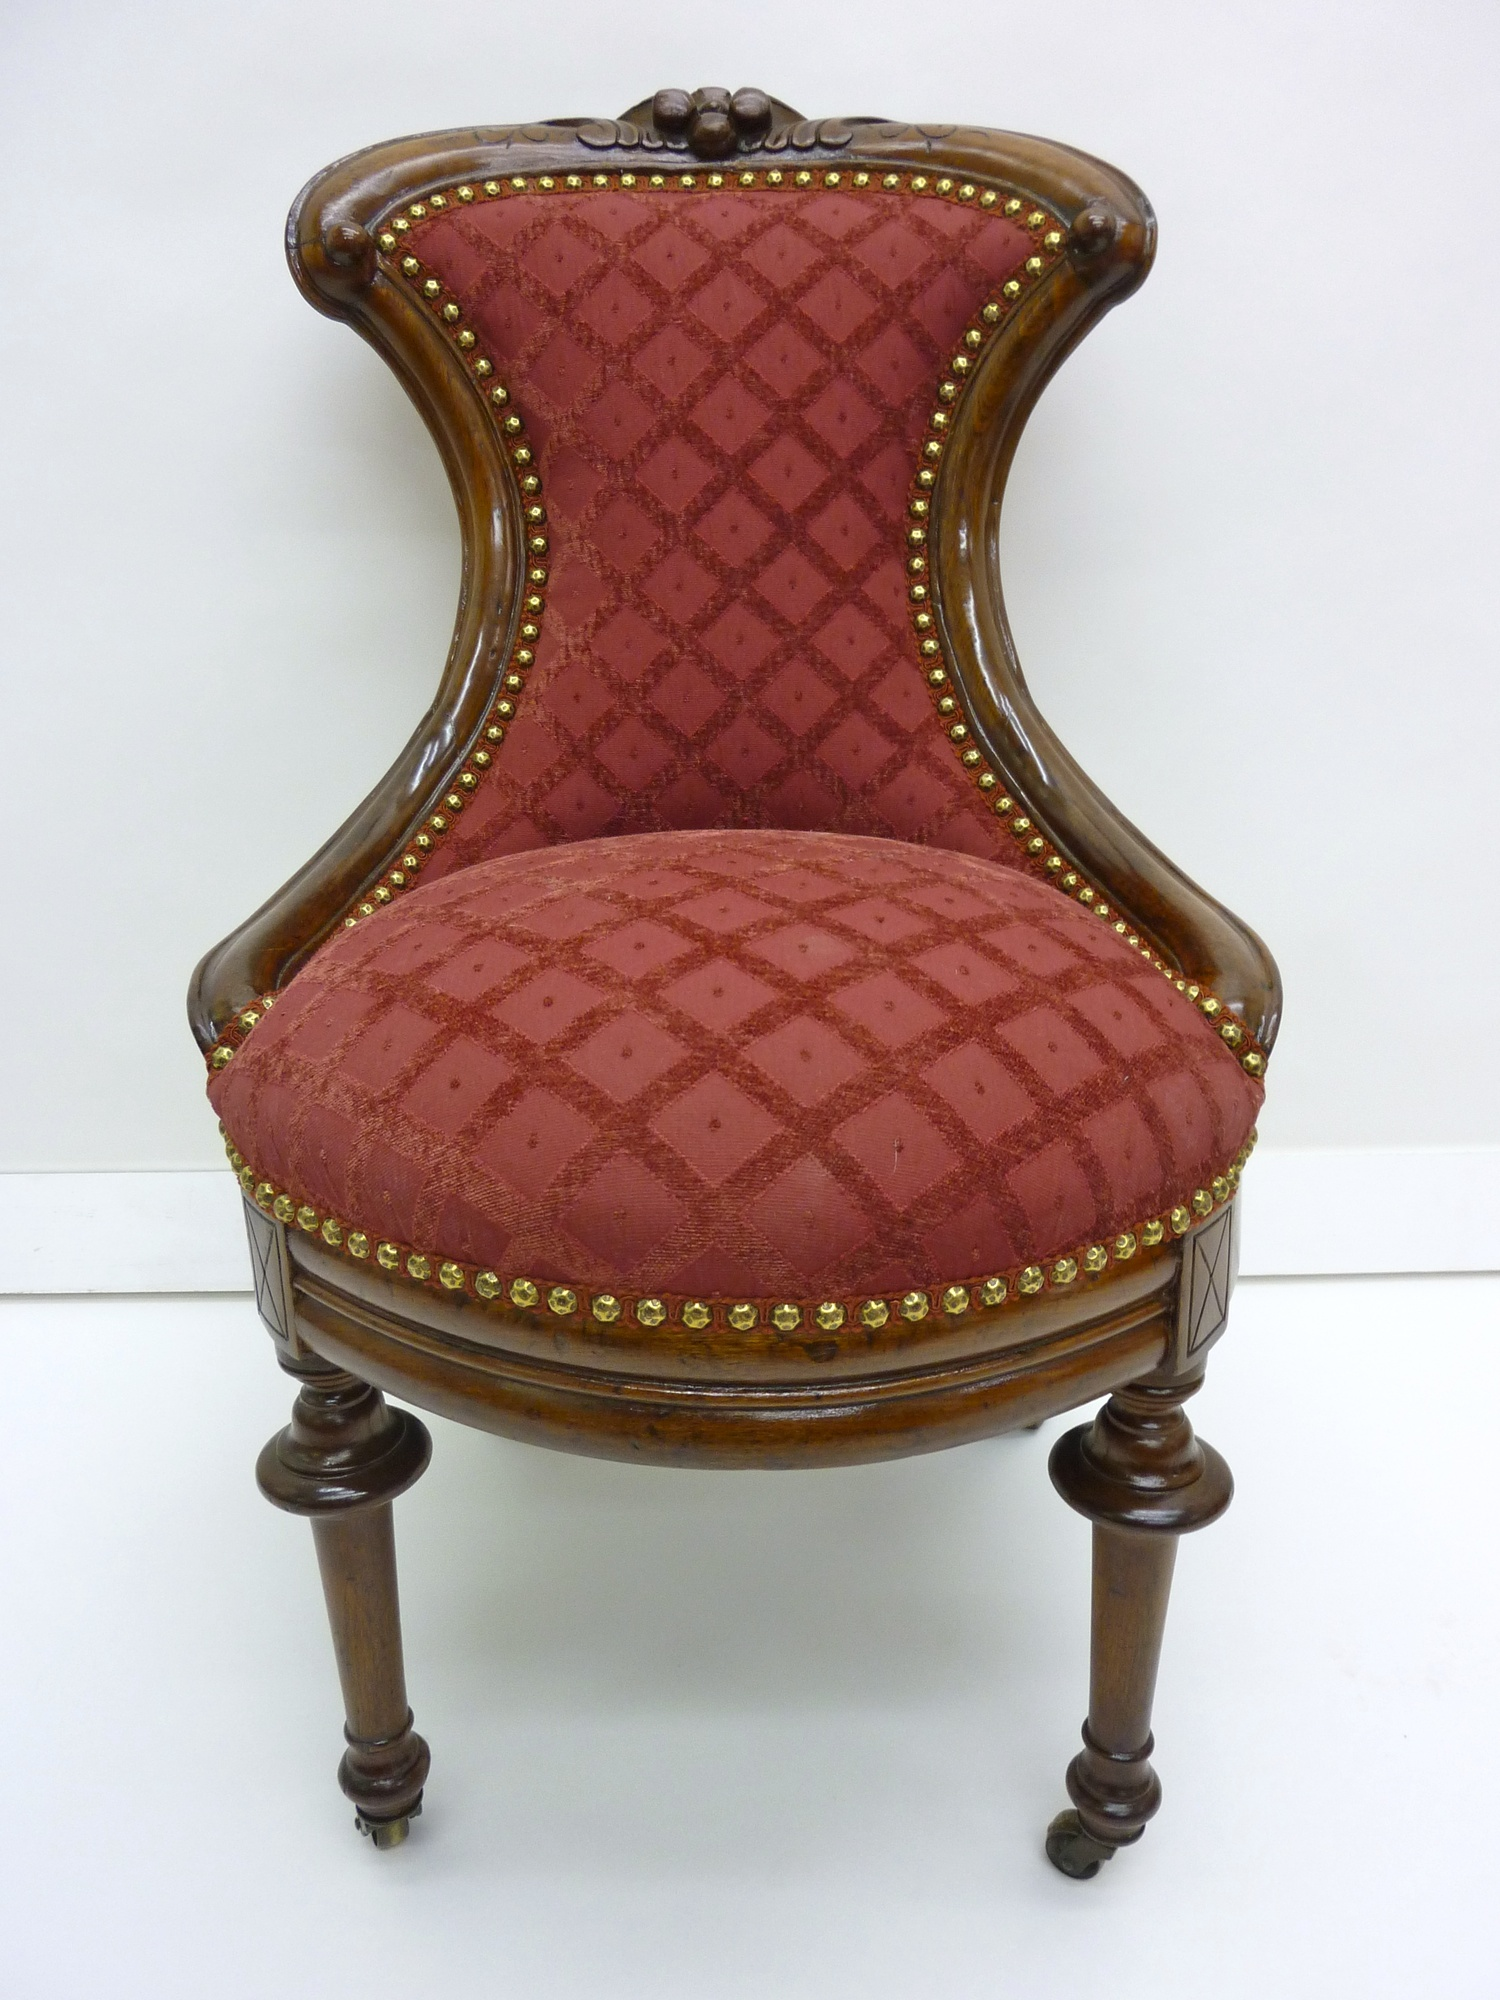 red chair.jpg - Contact — Antique Furniture And Wood Object Preservation